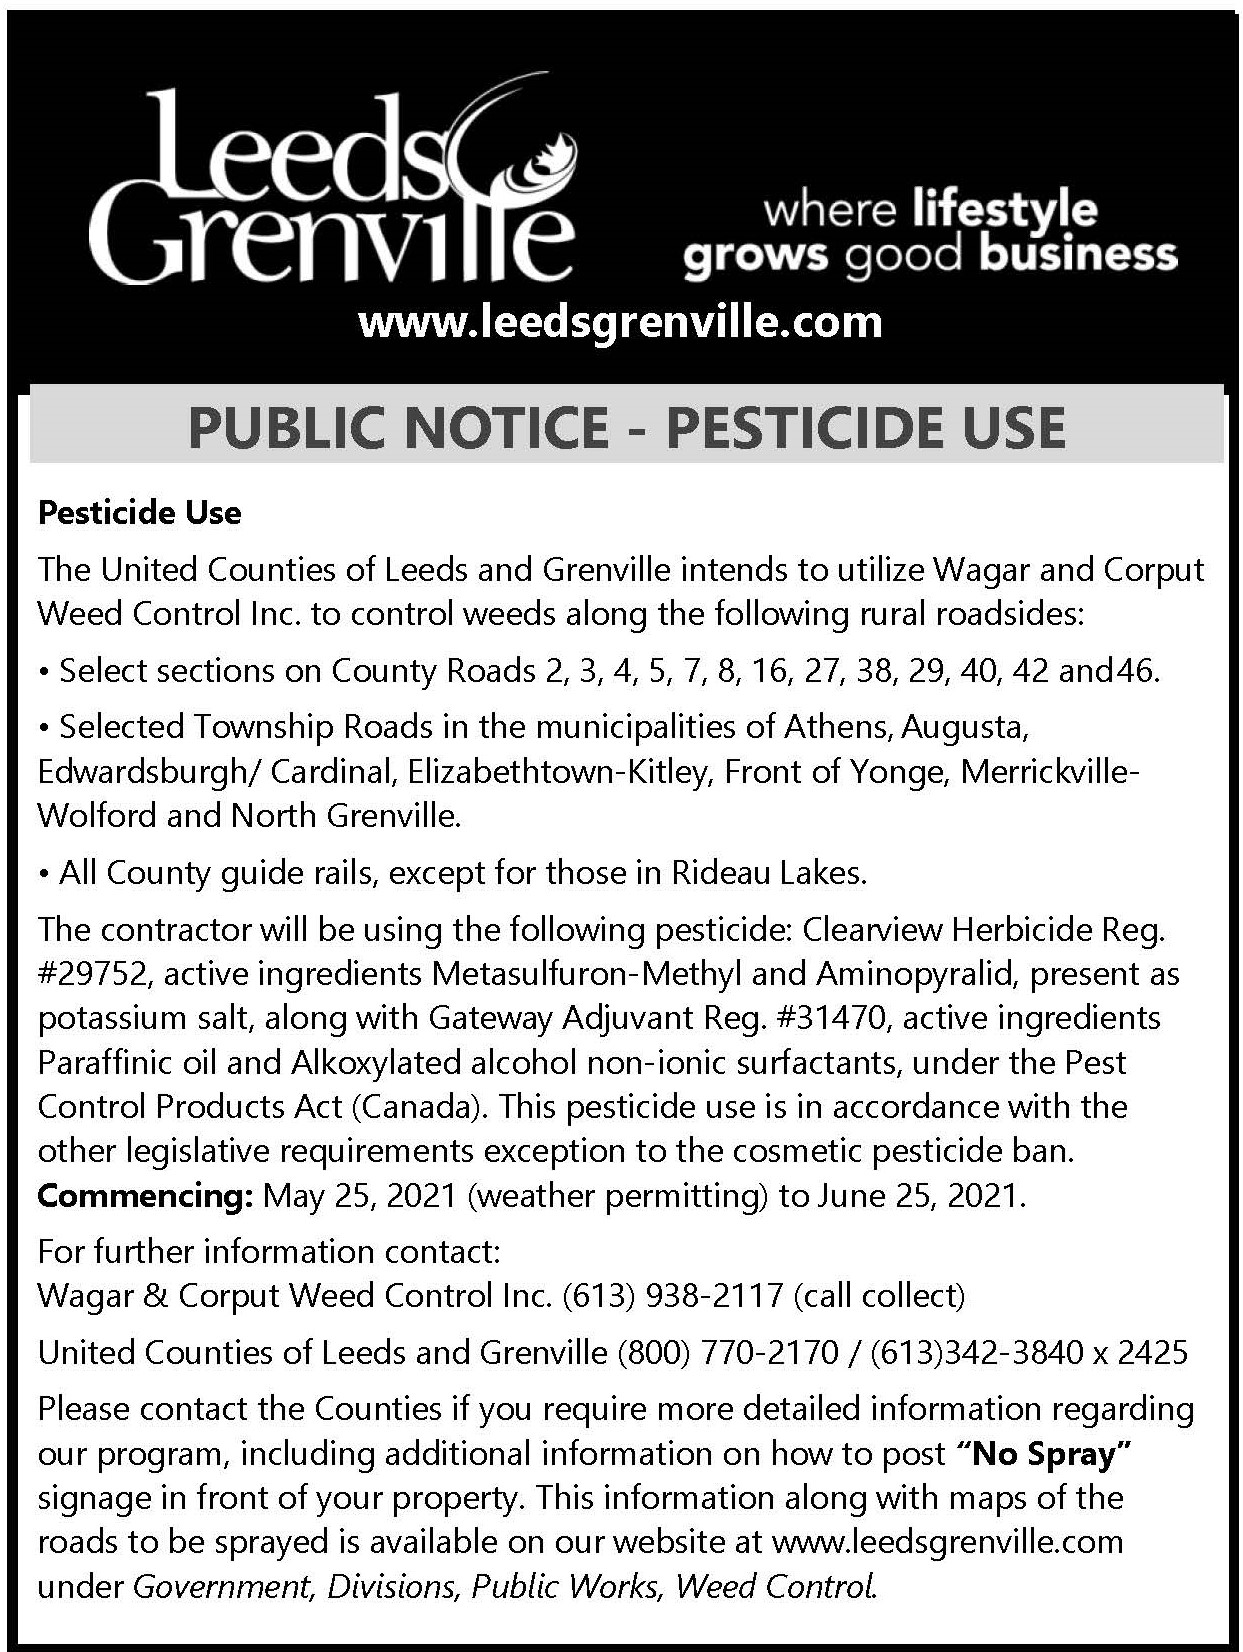 public notice from the united counties of leeds and grenville which is available on their website as text